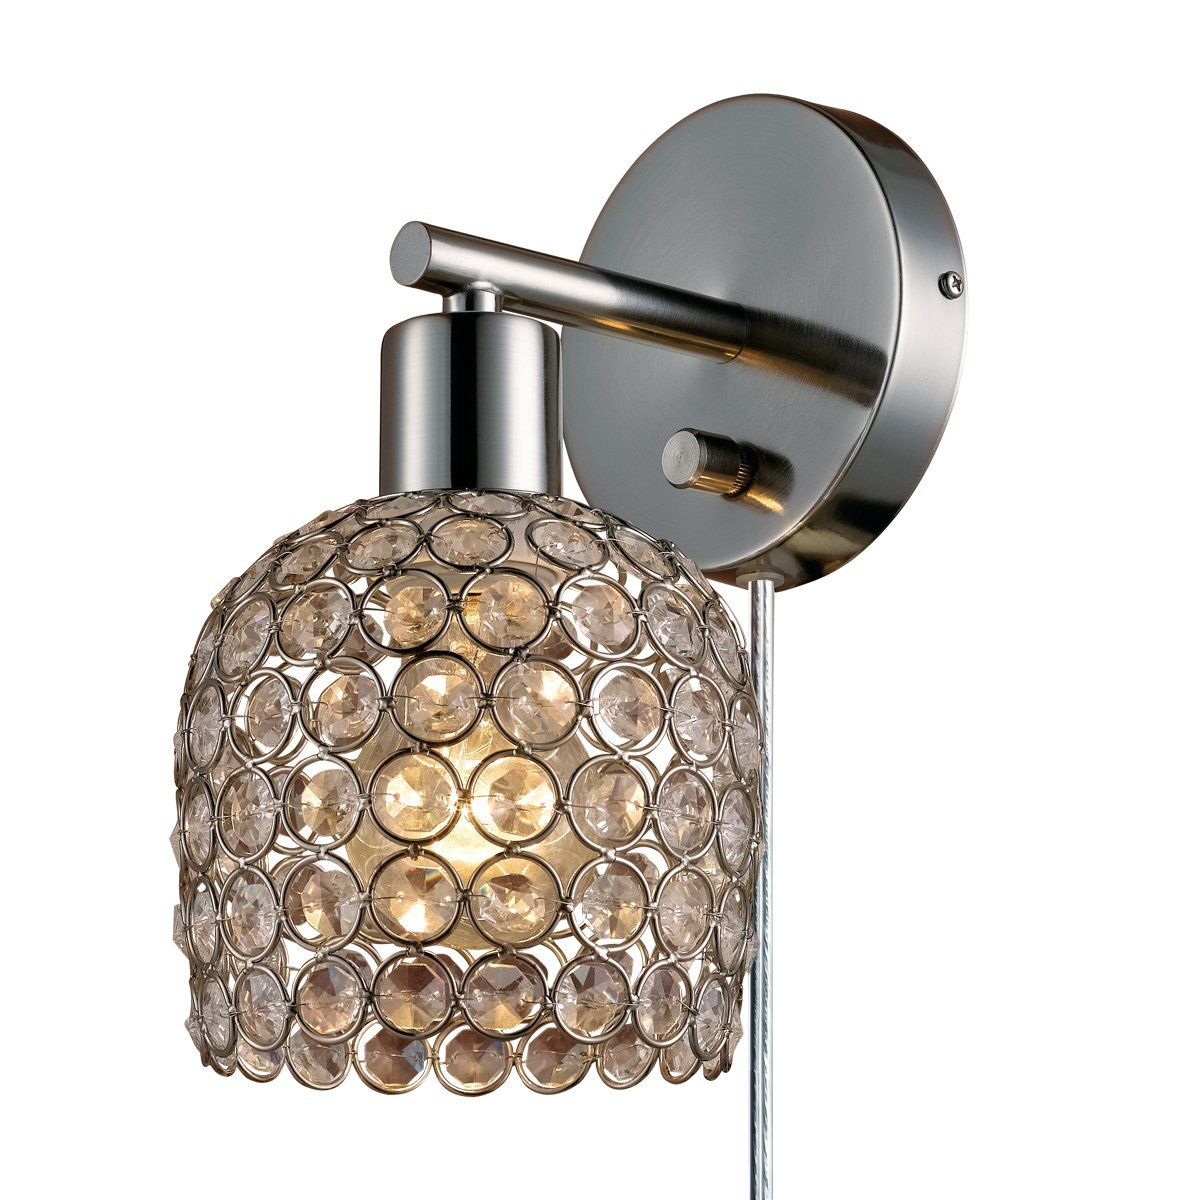 Globe electric vendome 1 light plug in or hardwire wall sconce globe electric vendome 1 light plug in or hardwire wall sconce brushed steel finish caged crystal shade 6ft clear cord rotary onoff switch 65310 arubaitofo Choice Image